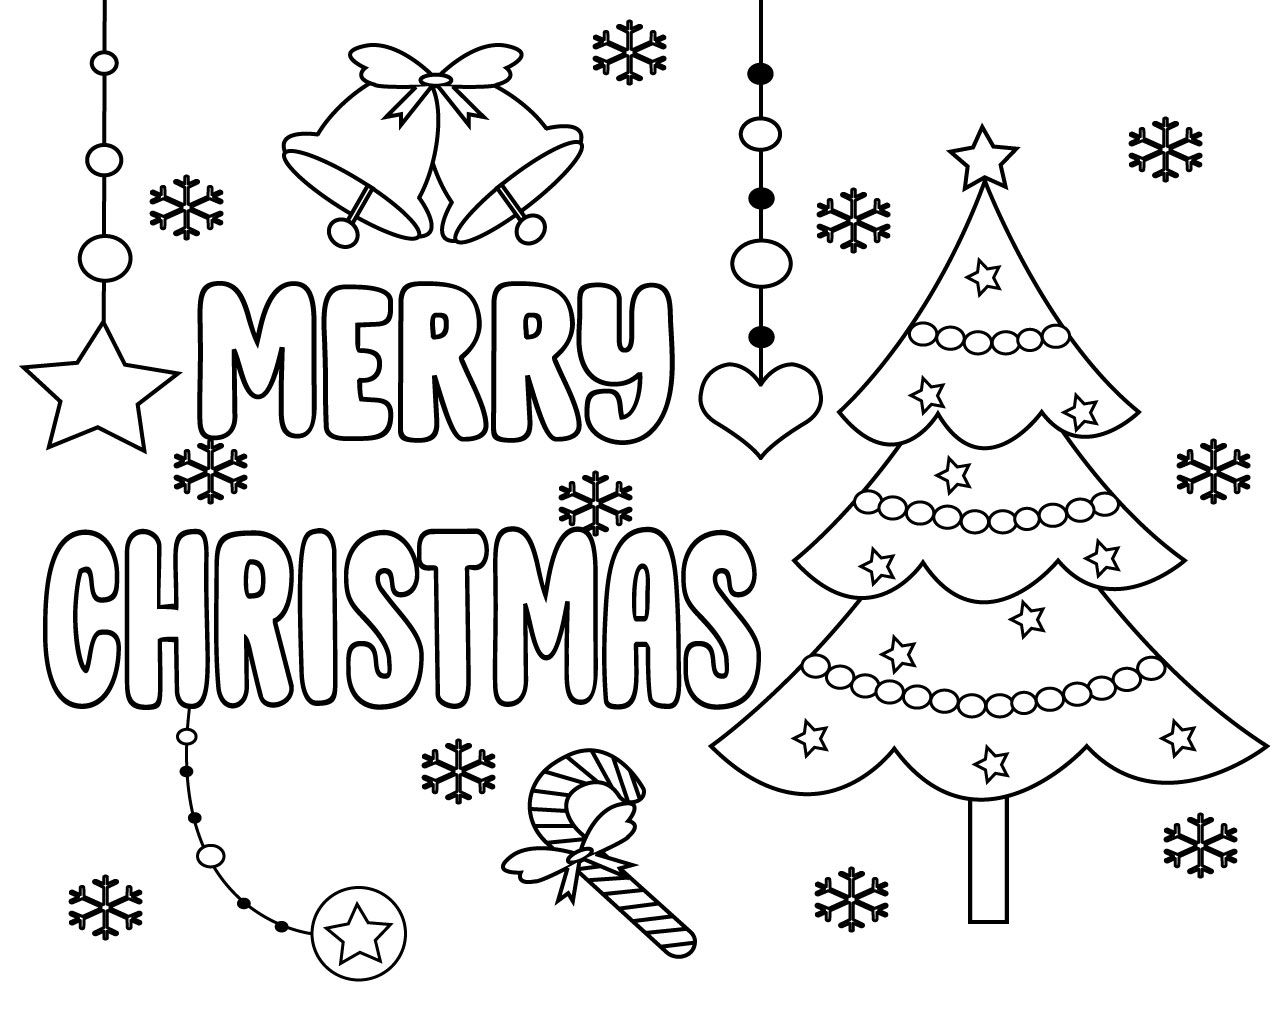 Free Printable Merry Christmas Coloring Pages For Kids Christmas Is Celebrated On 25 December